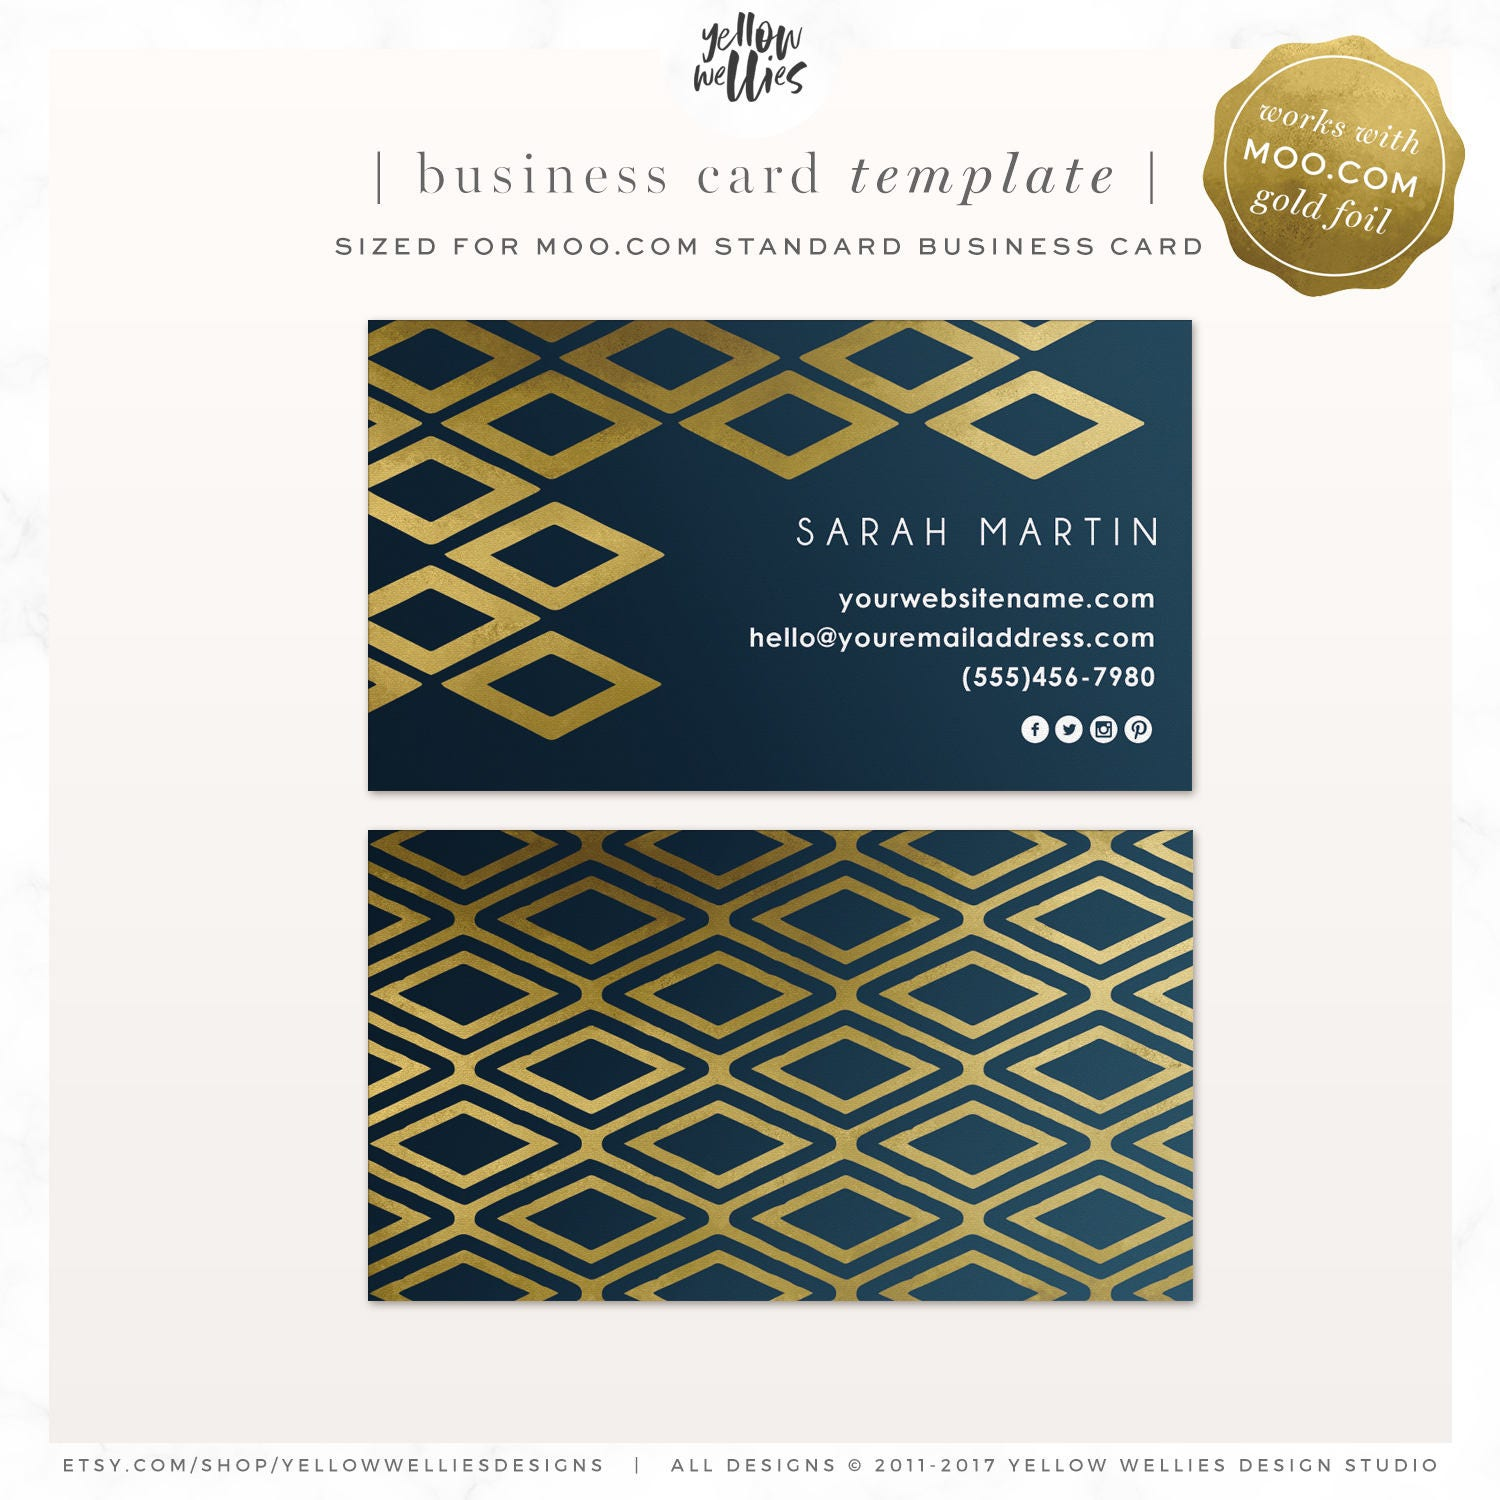 Gold ikat business card diamond business card moo gold zoom reheart Images